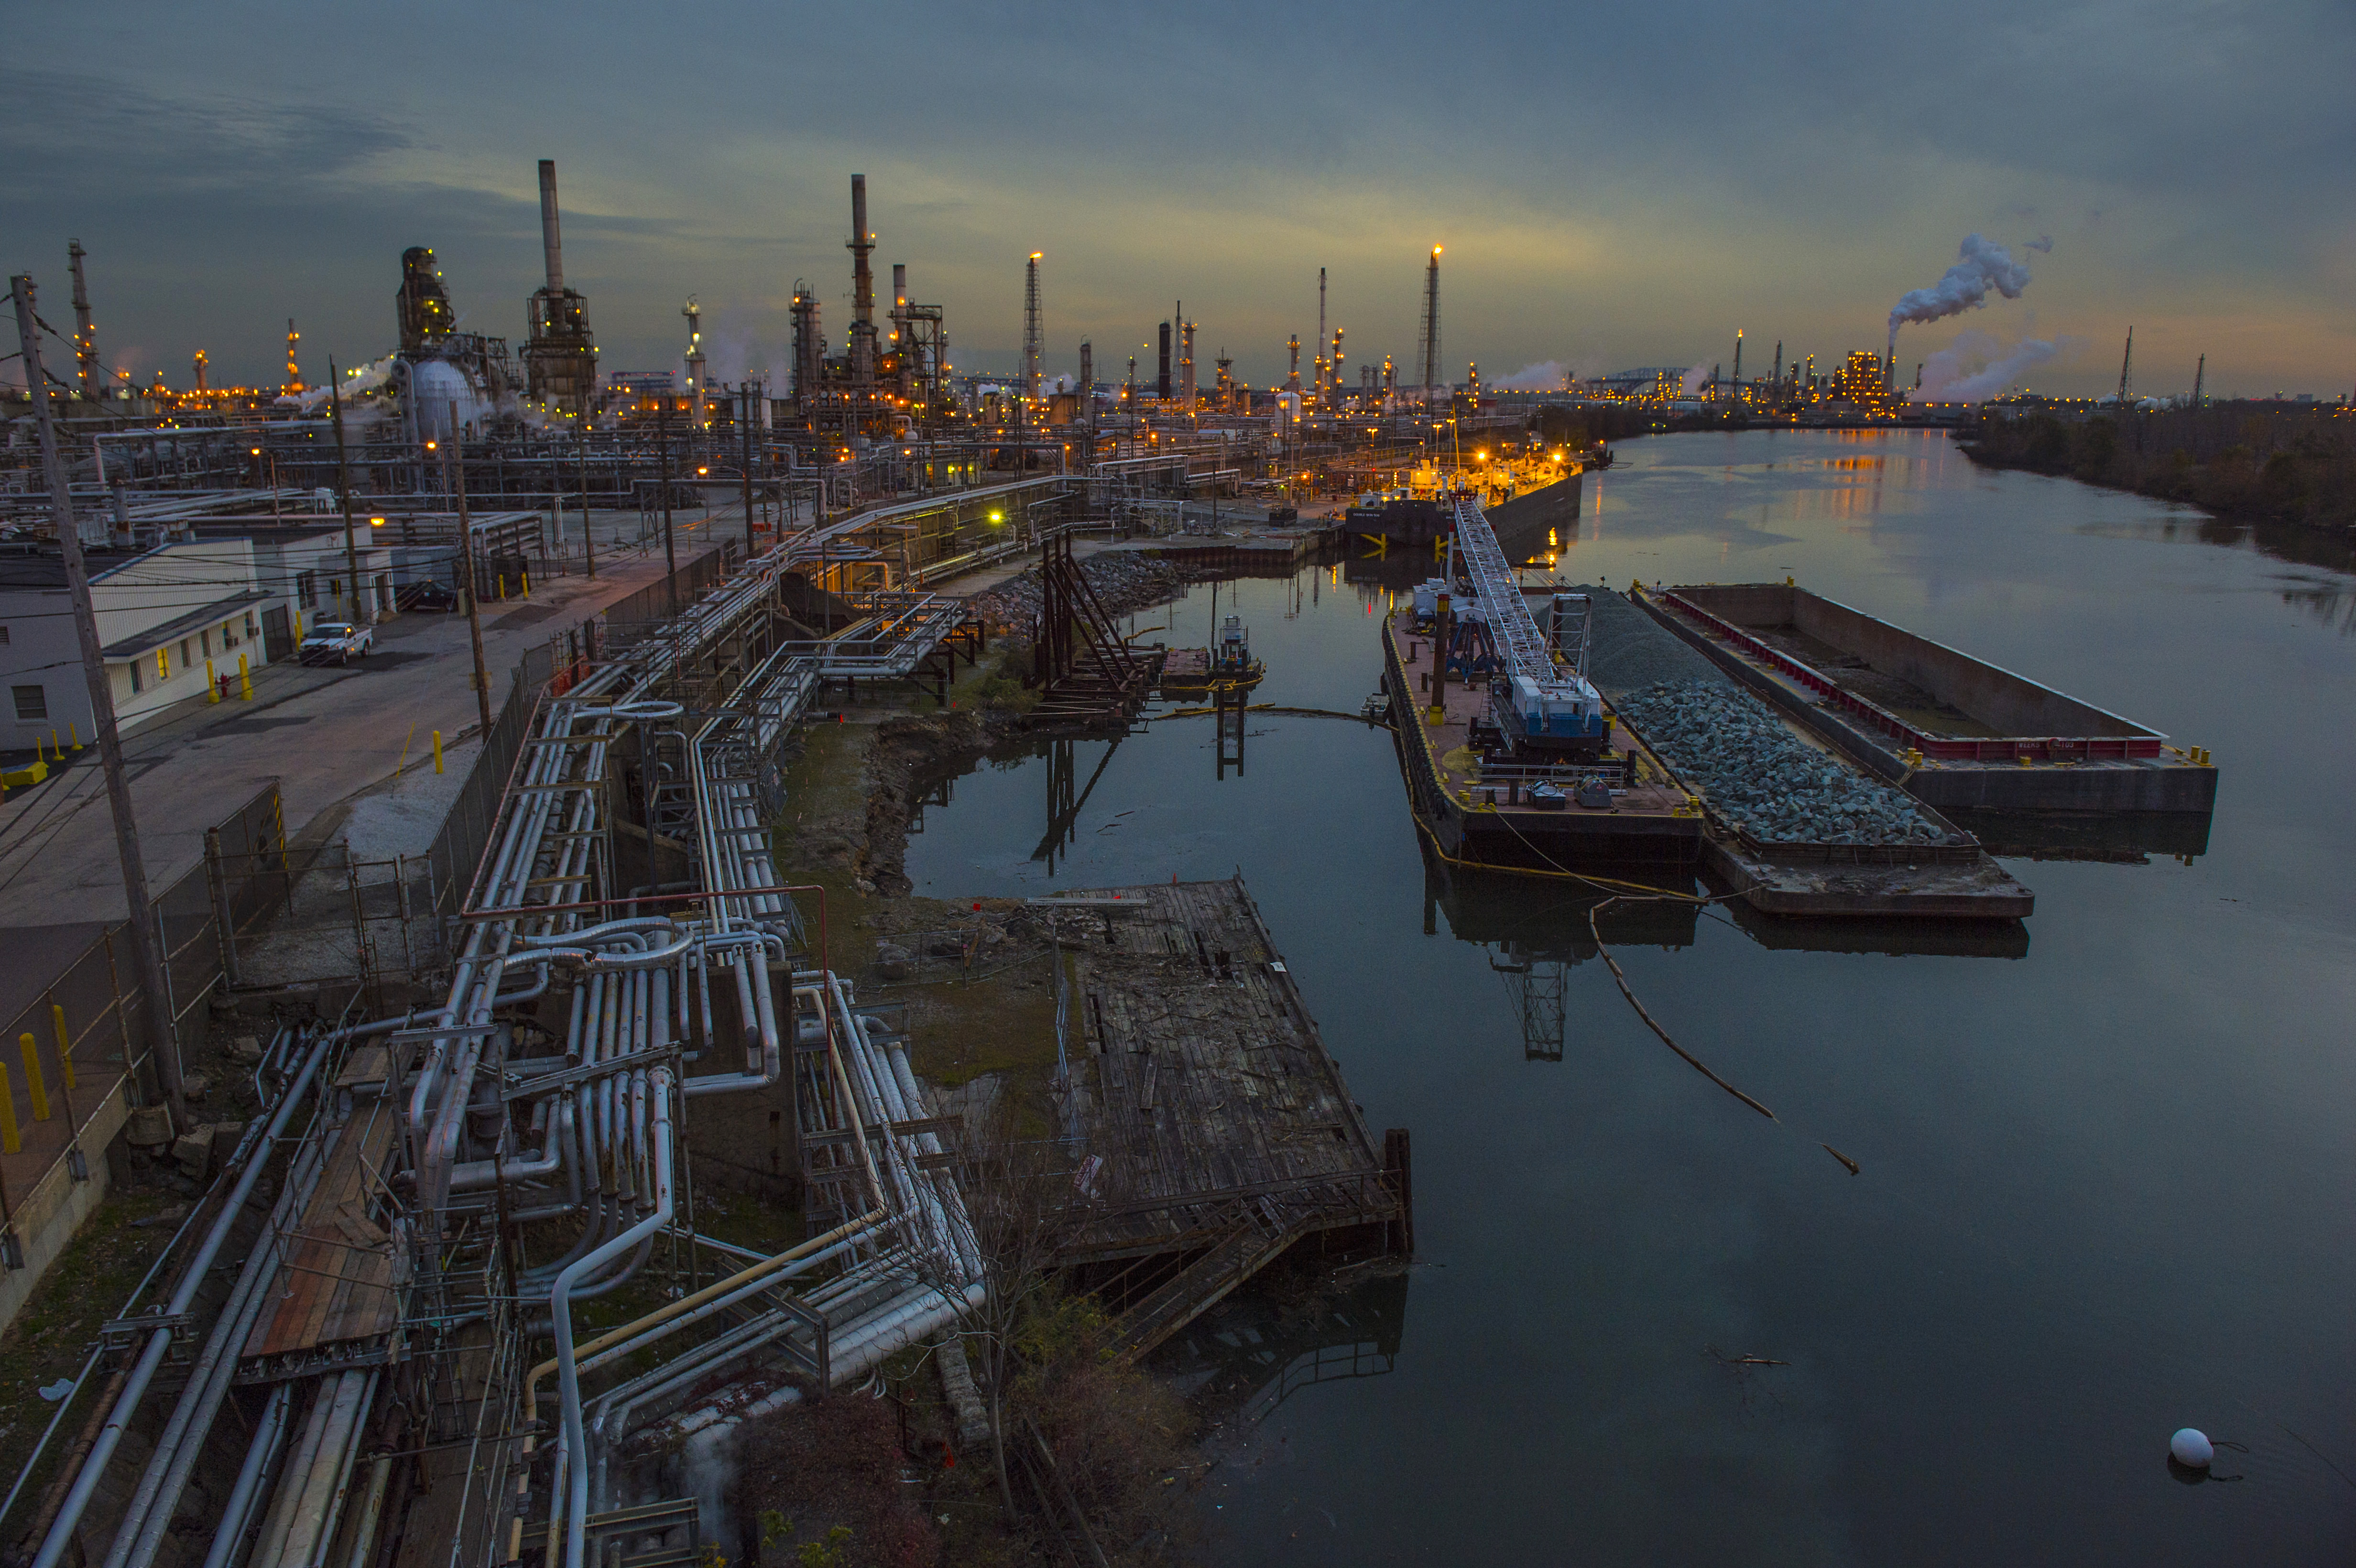 After refinery shutdown, what happens to the land?